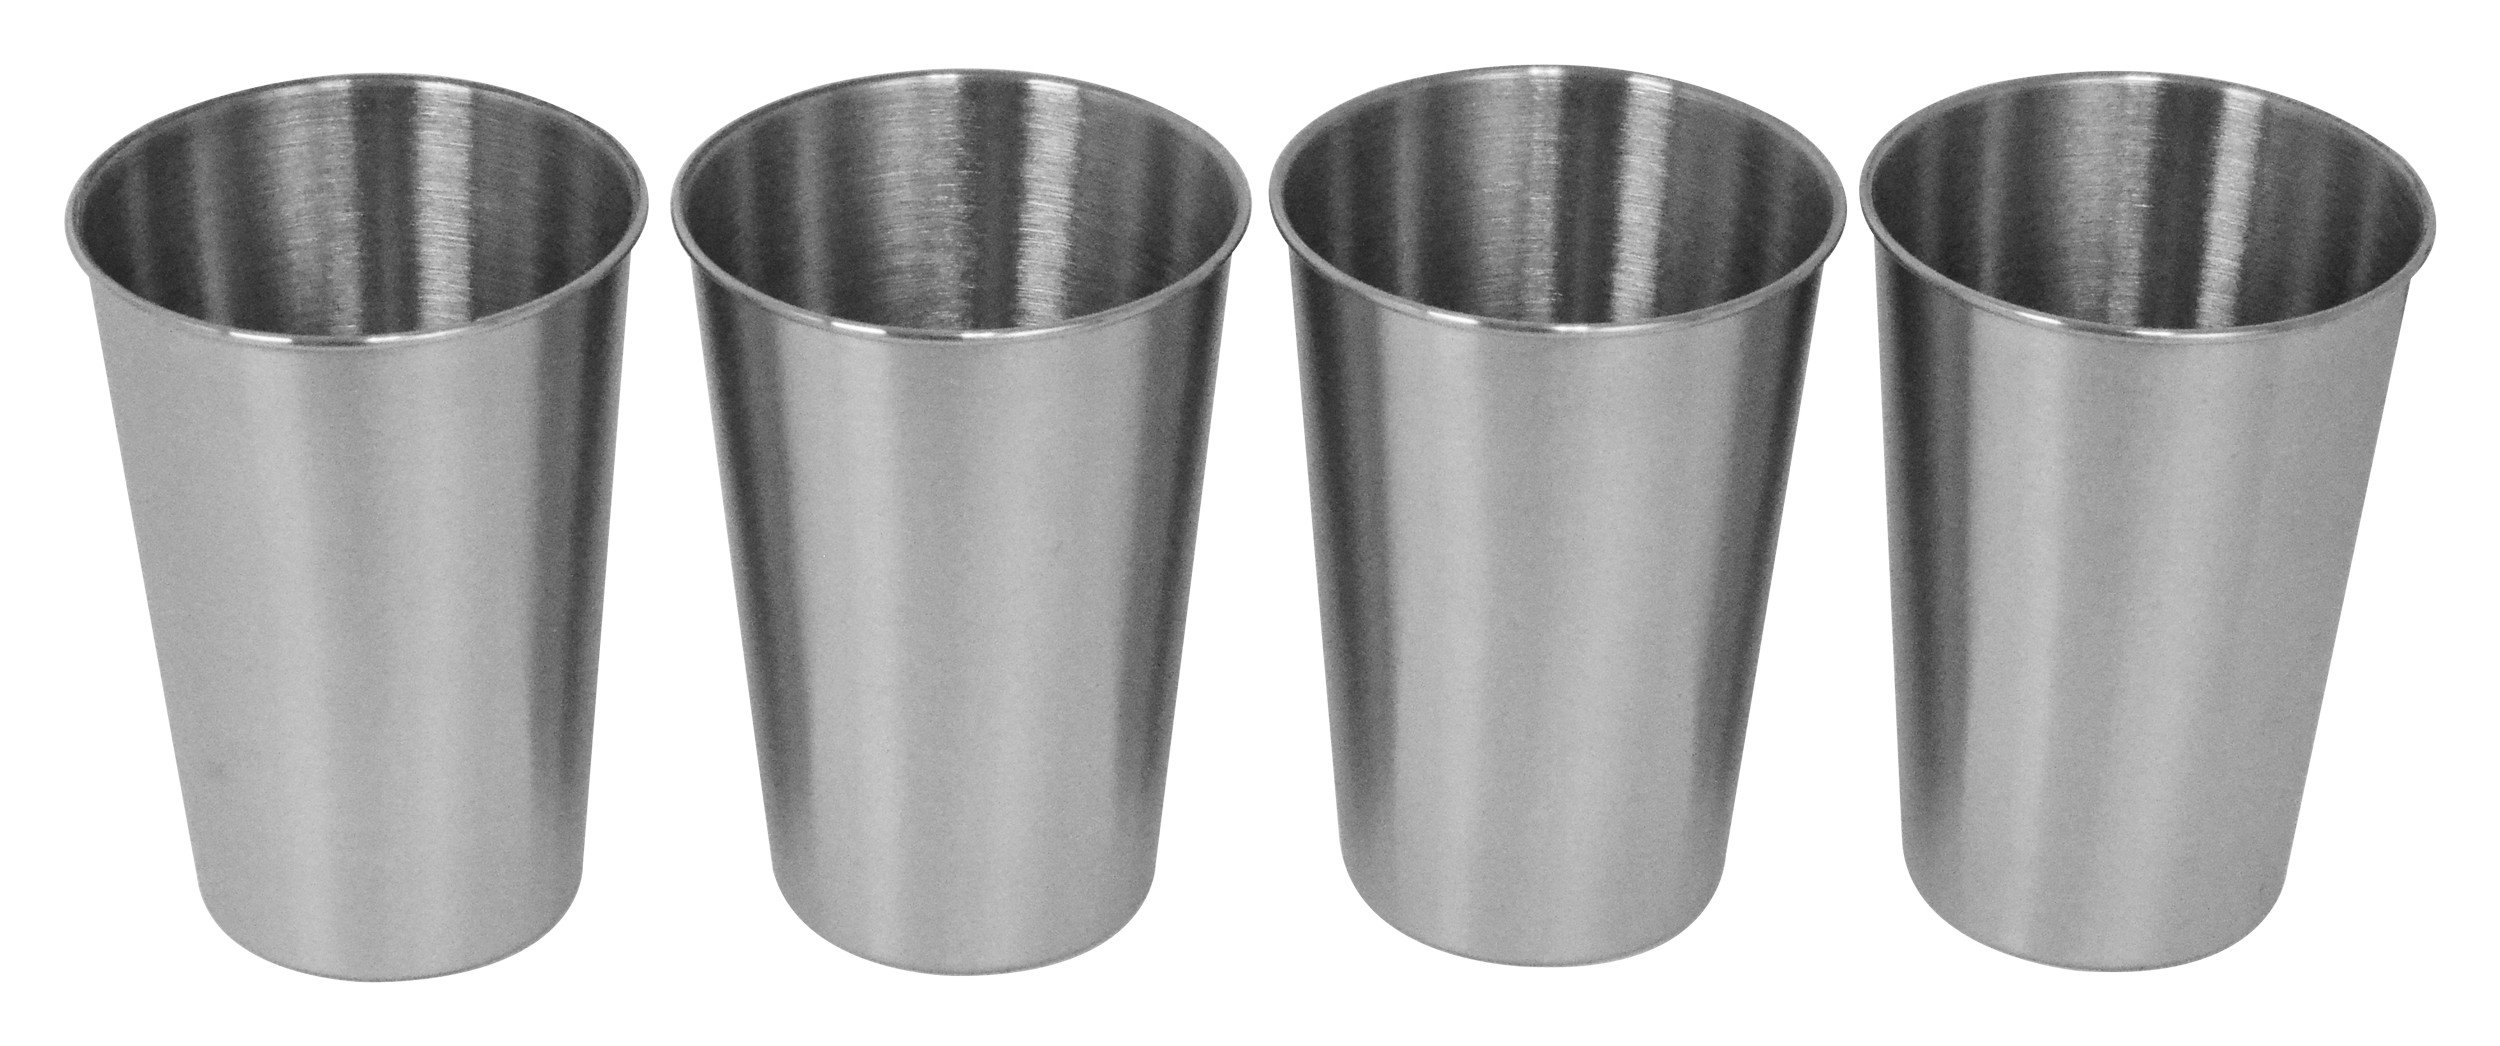 Southern Homewares SH-10145-S4 Stainless Steel Pint Glass 16oz Metal Cup Beer Soda Drink Tumbler Set of 4, Silver